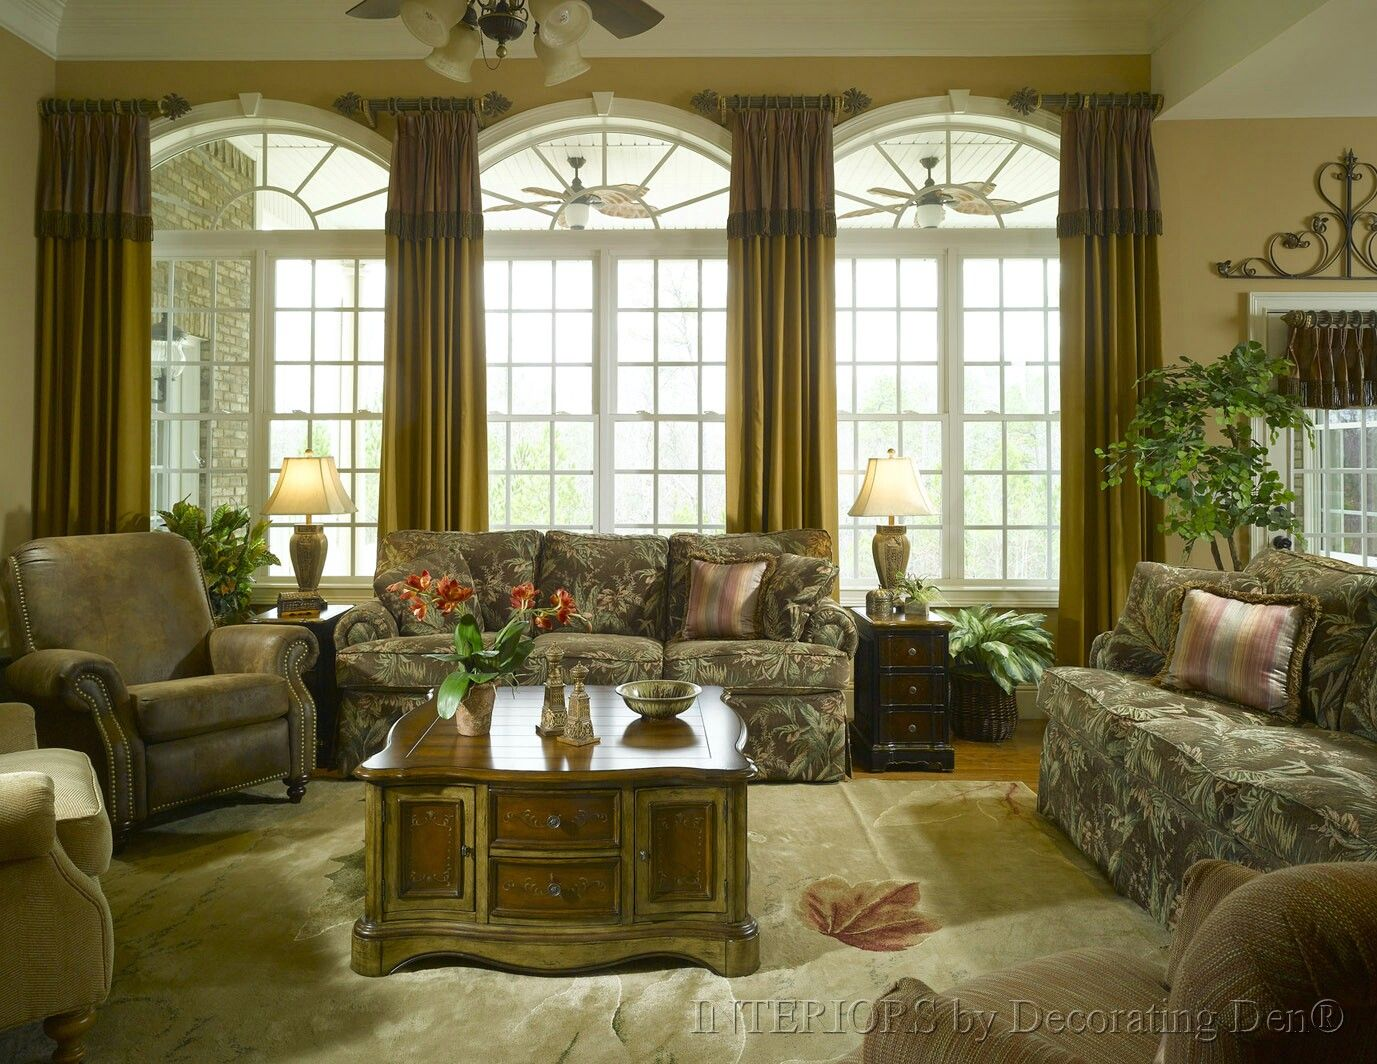 17 Best images about Custom window treatments on Pinterest